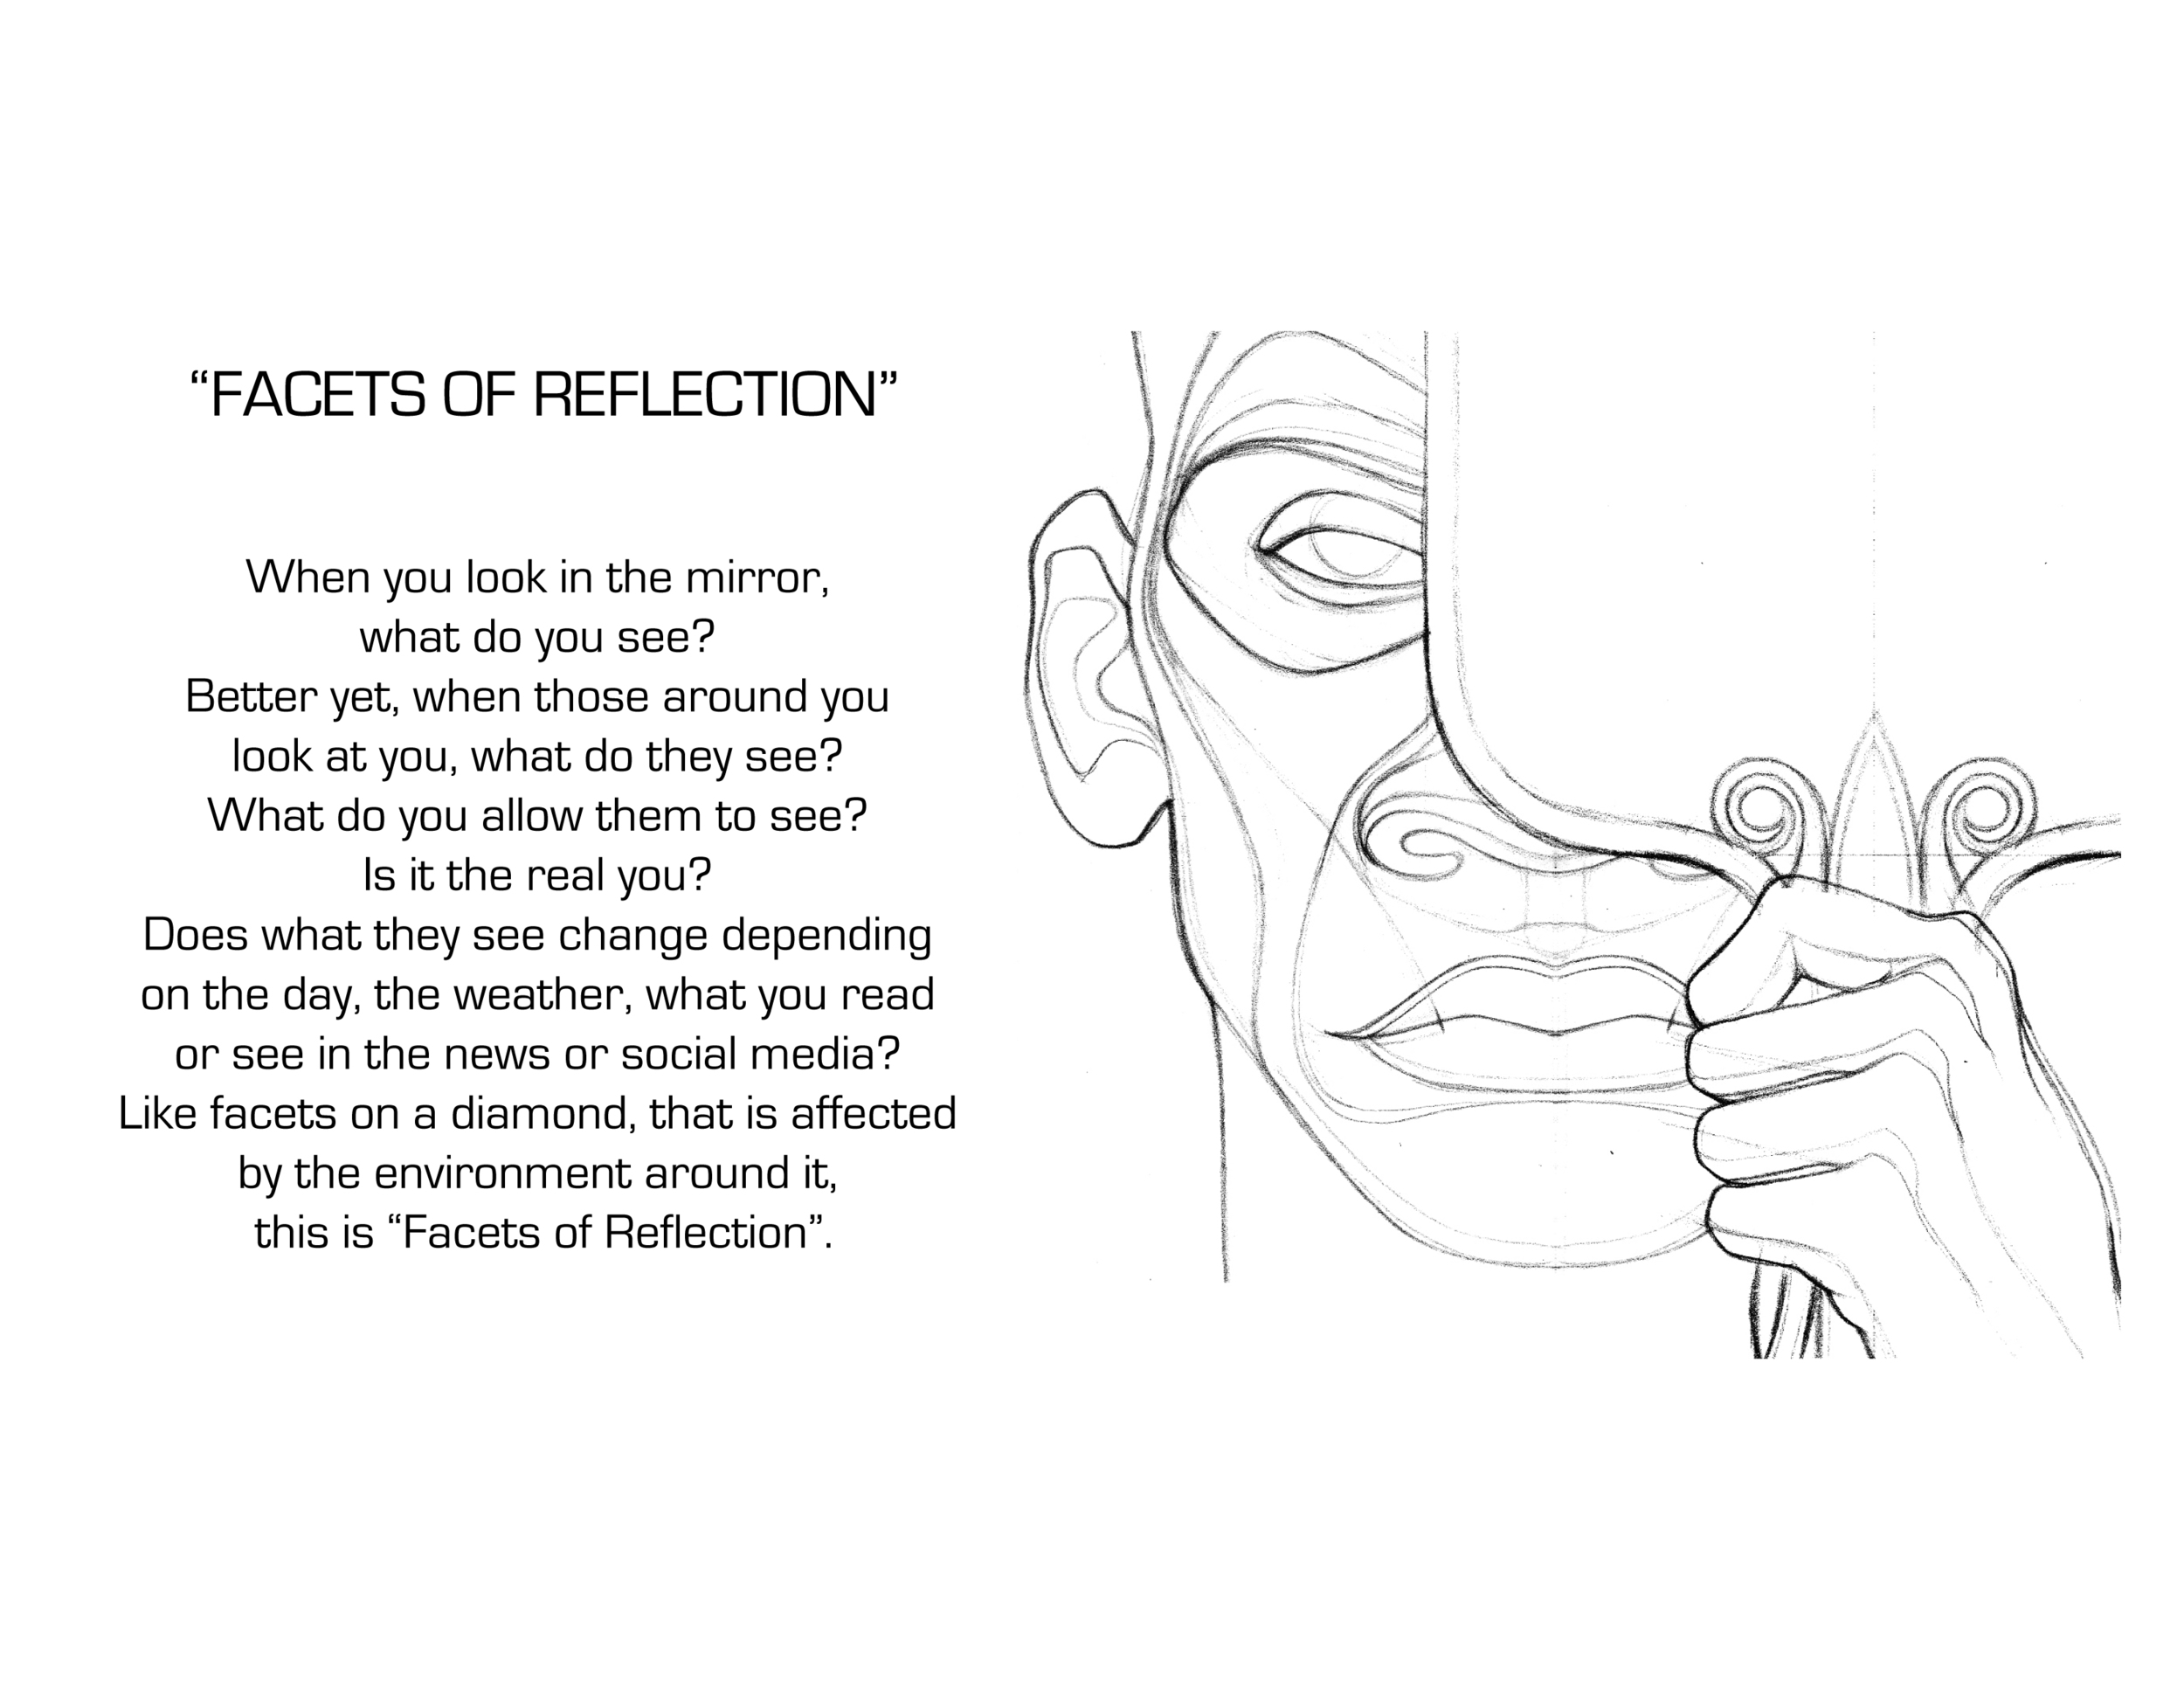 Facets of Reflection Sketch